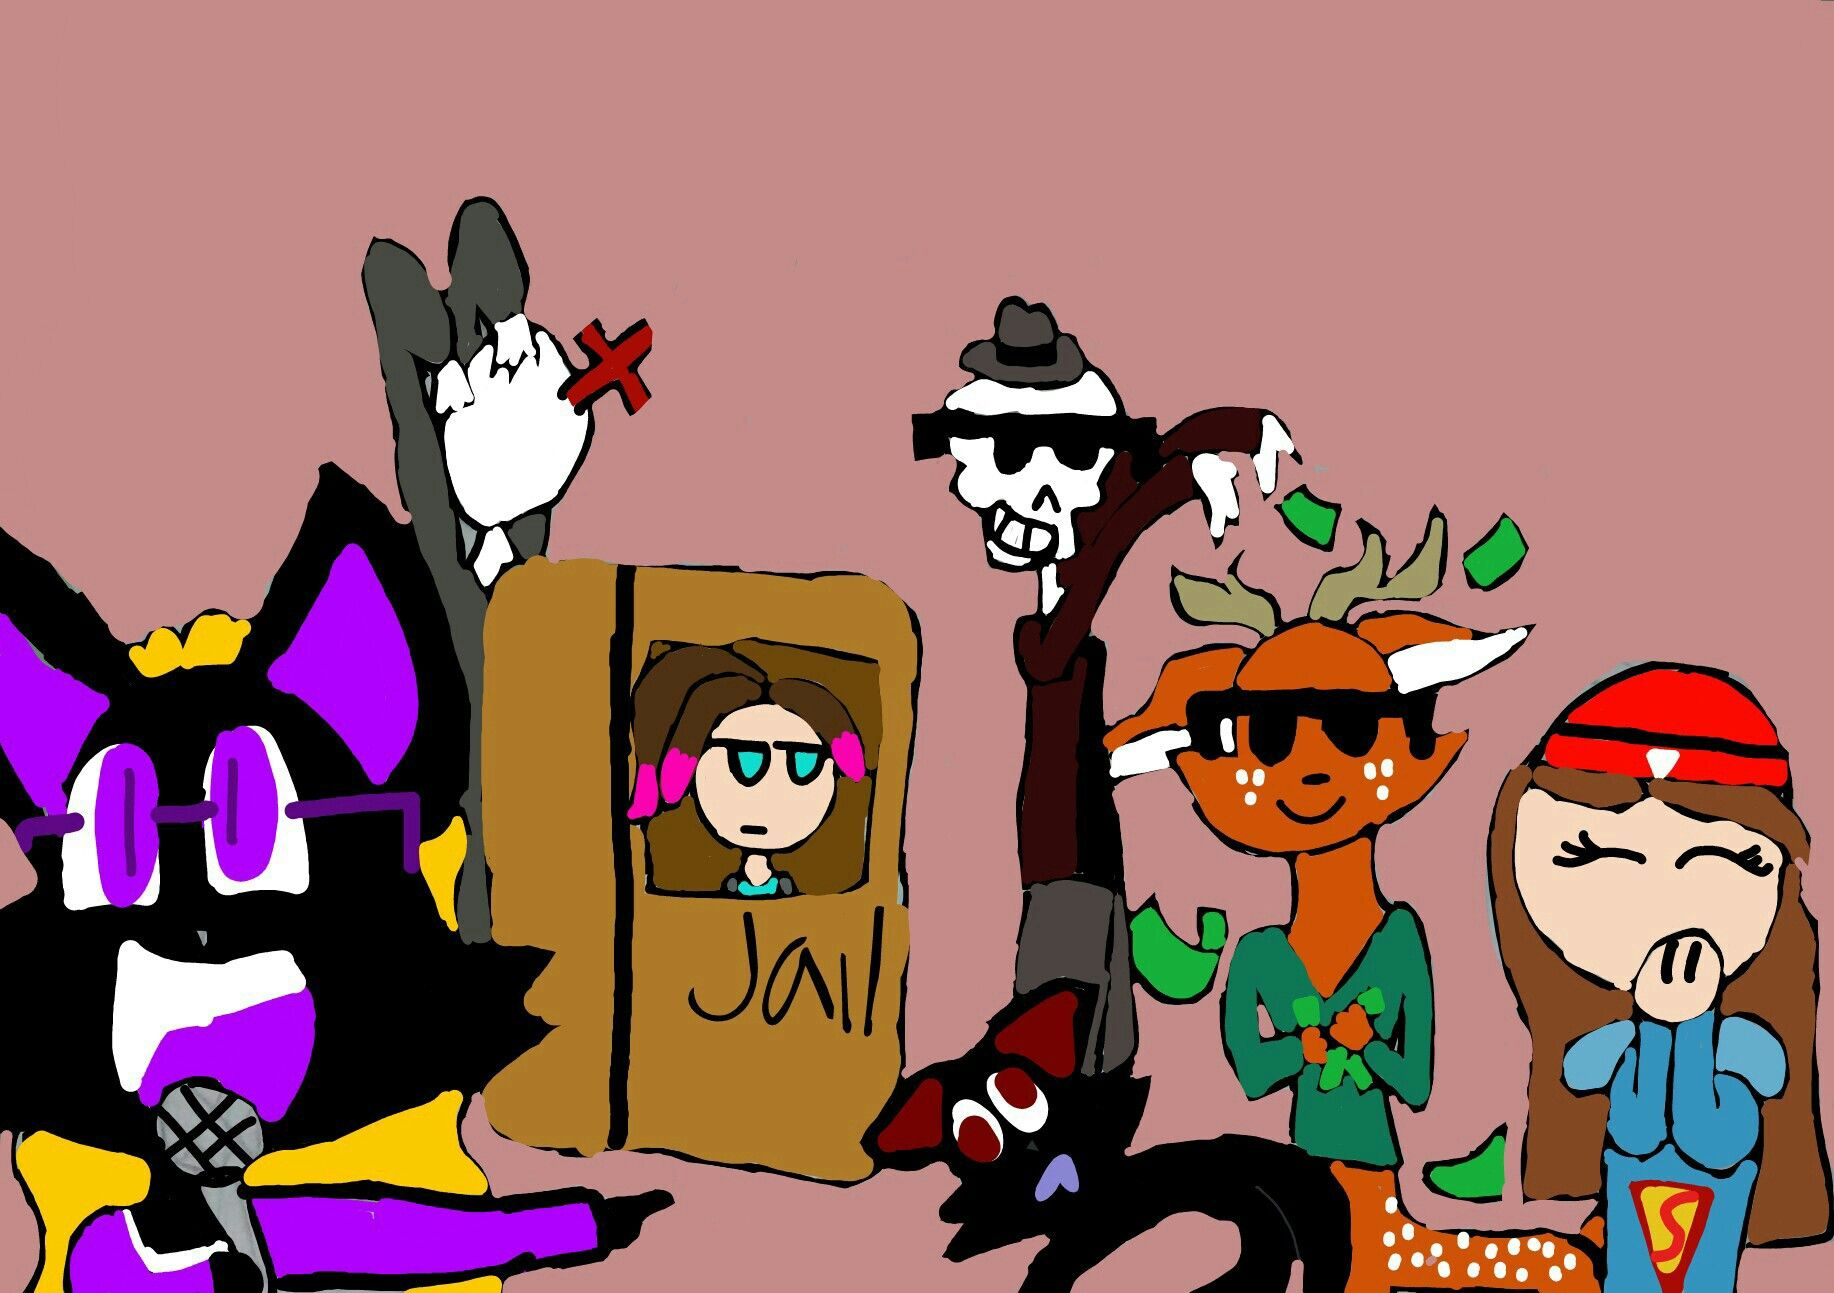 Bailey the Bat and her freinds having fun.